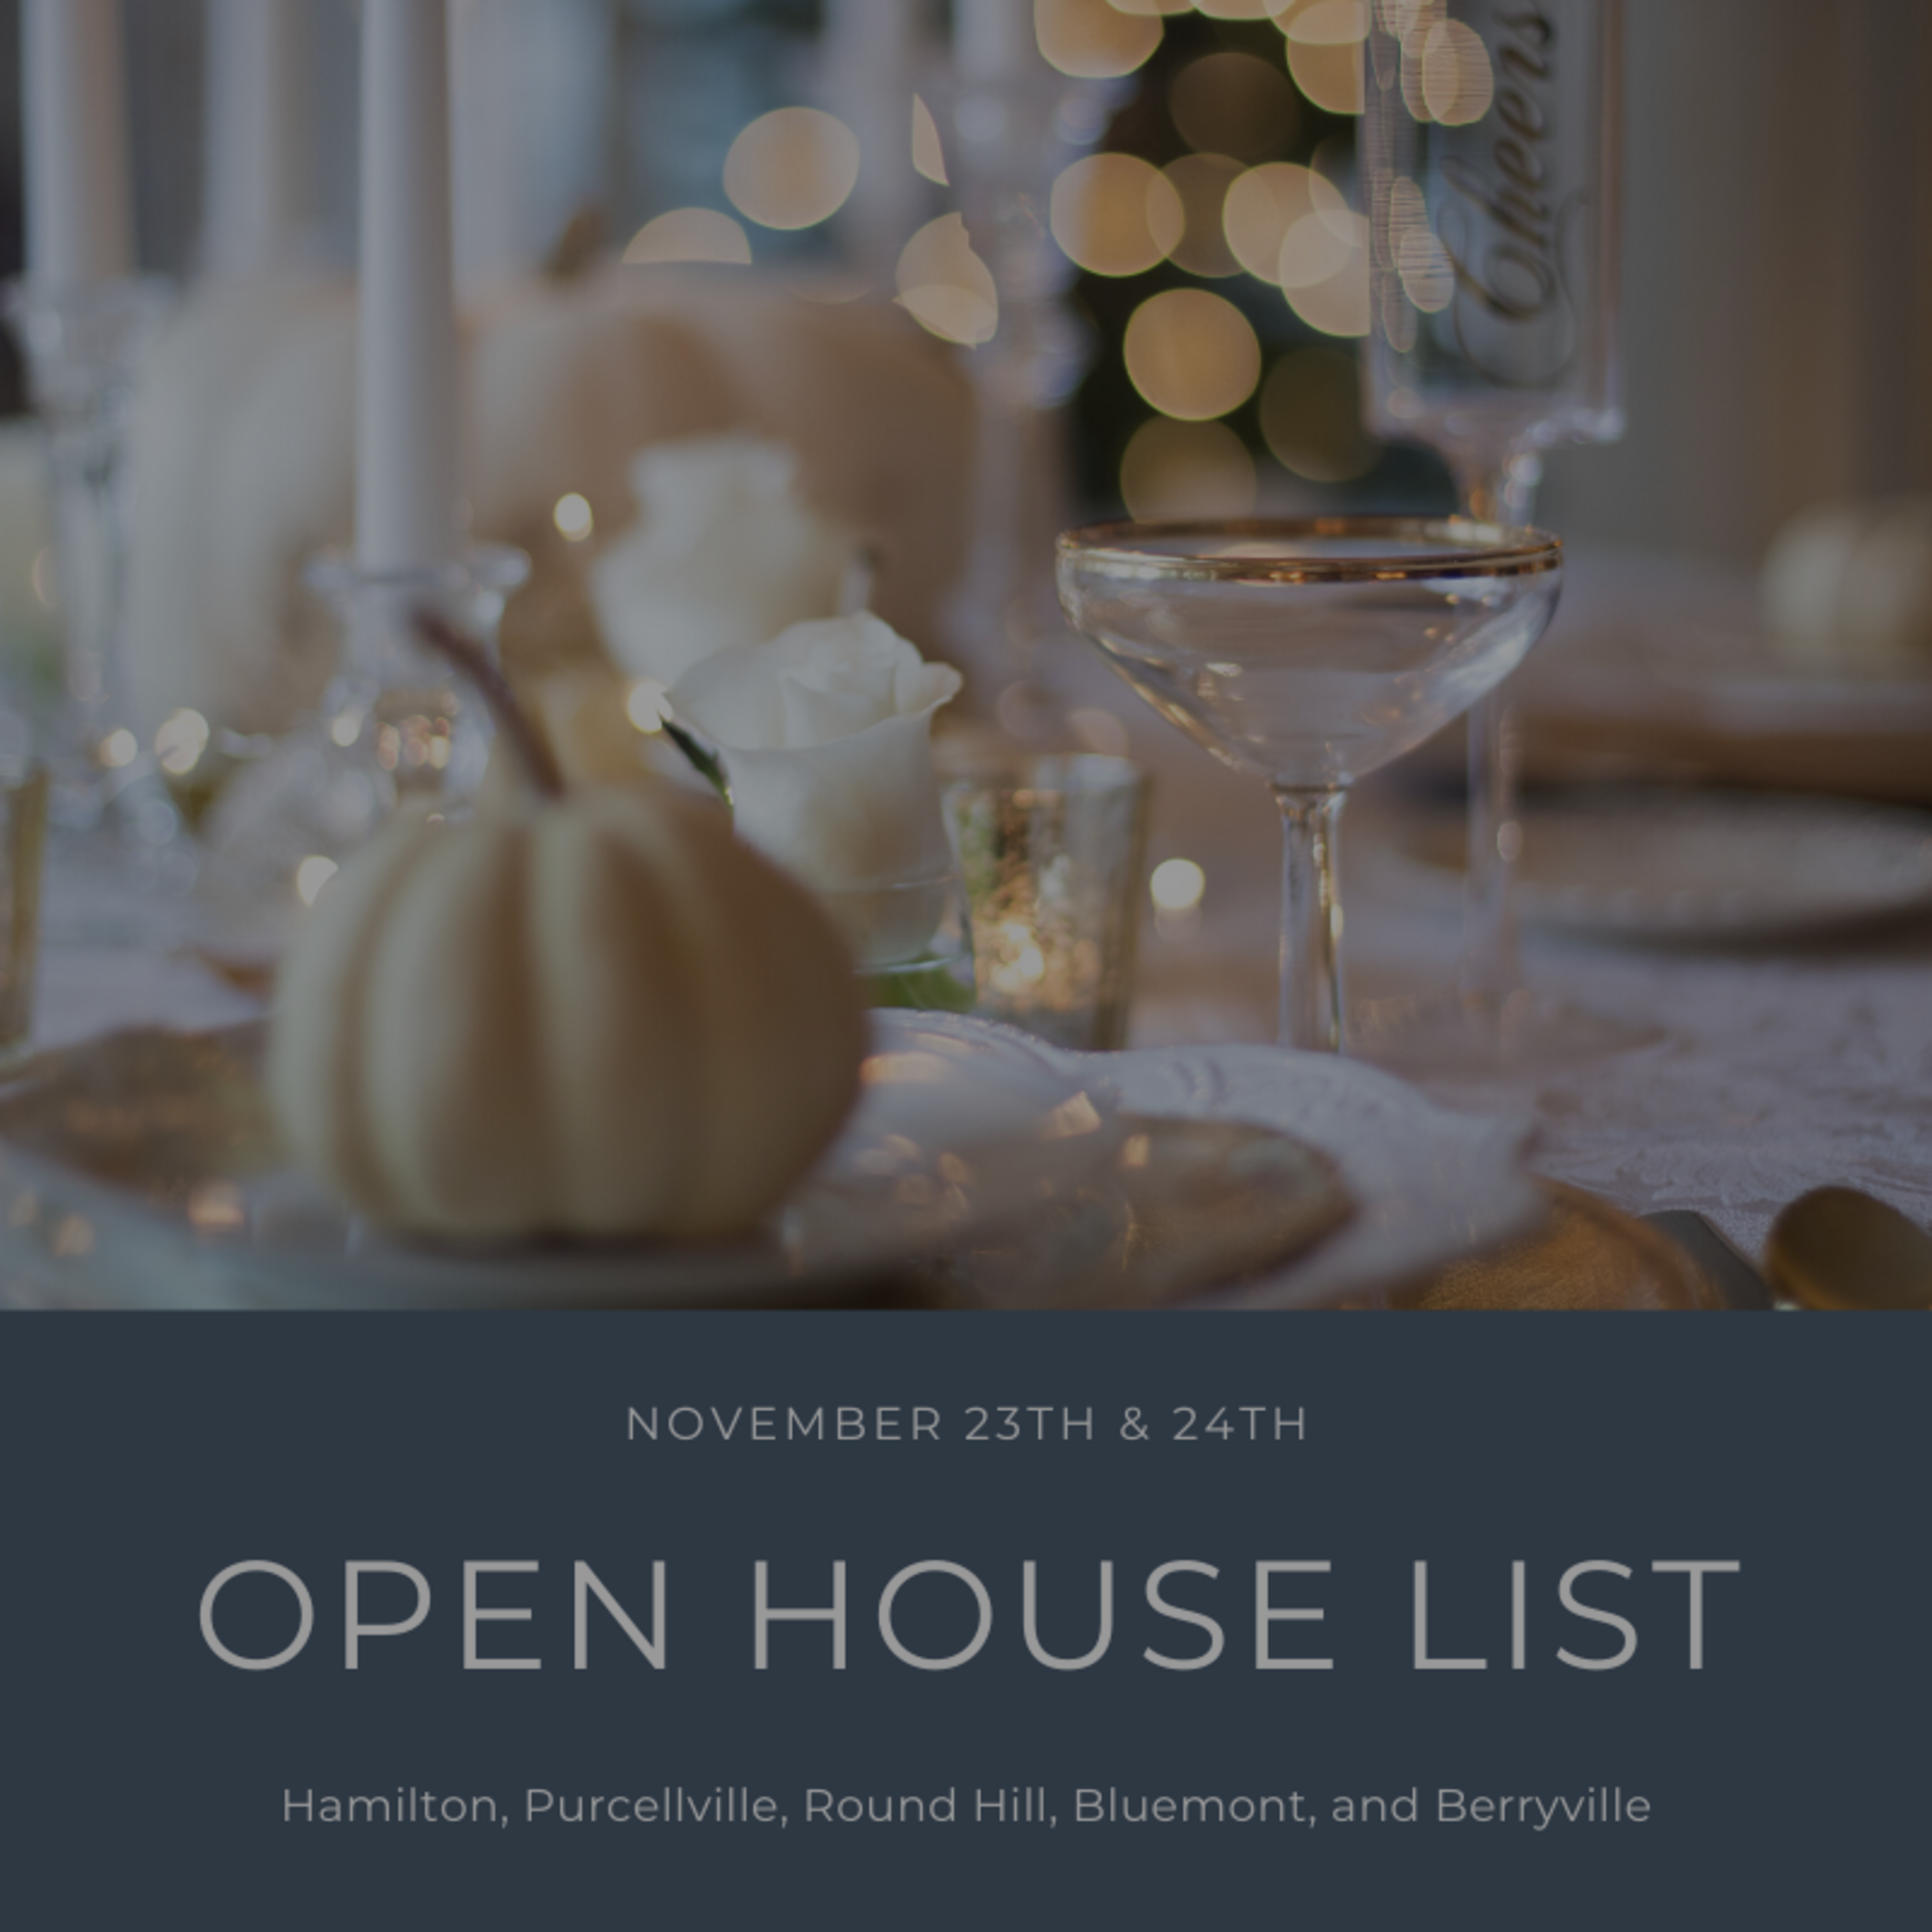 Open House List 11/23/19 – 11/24/19